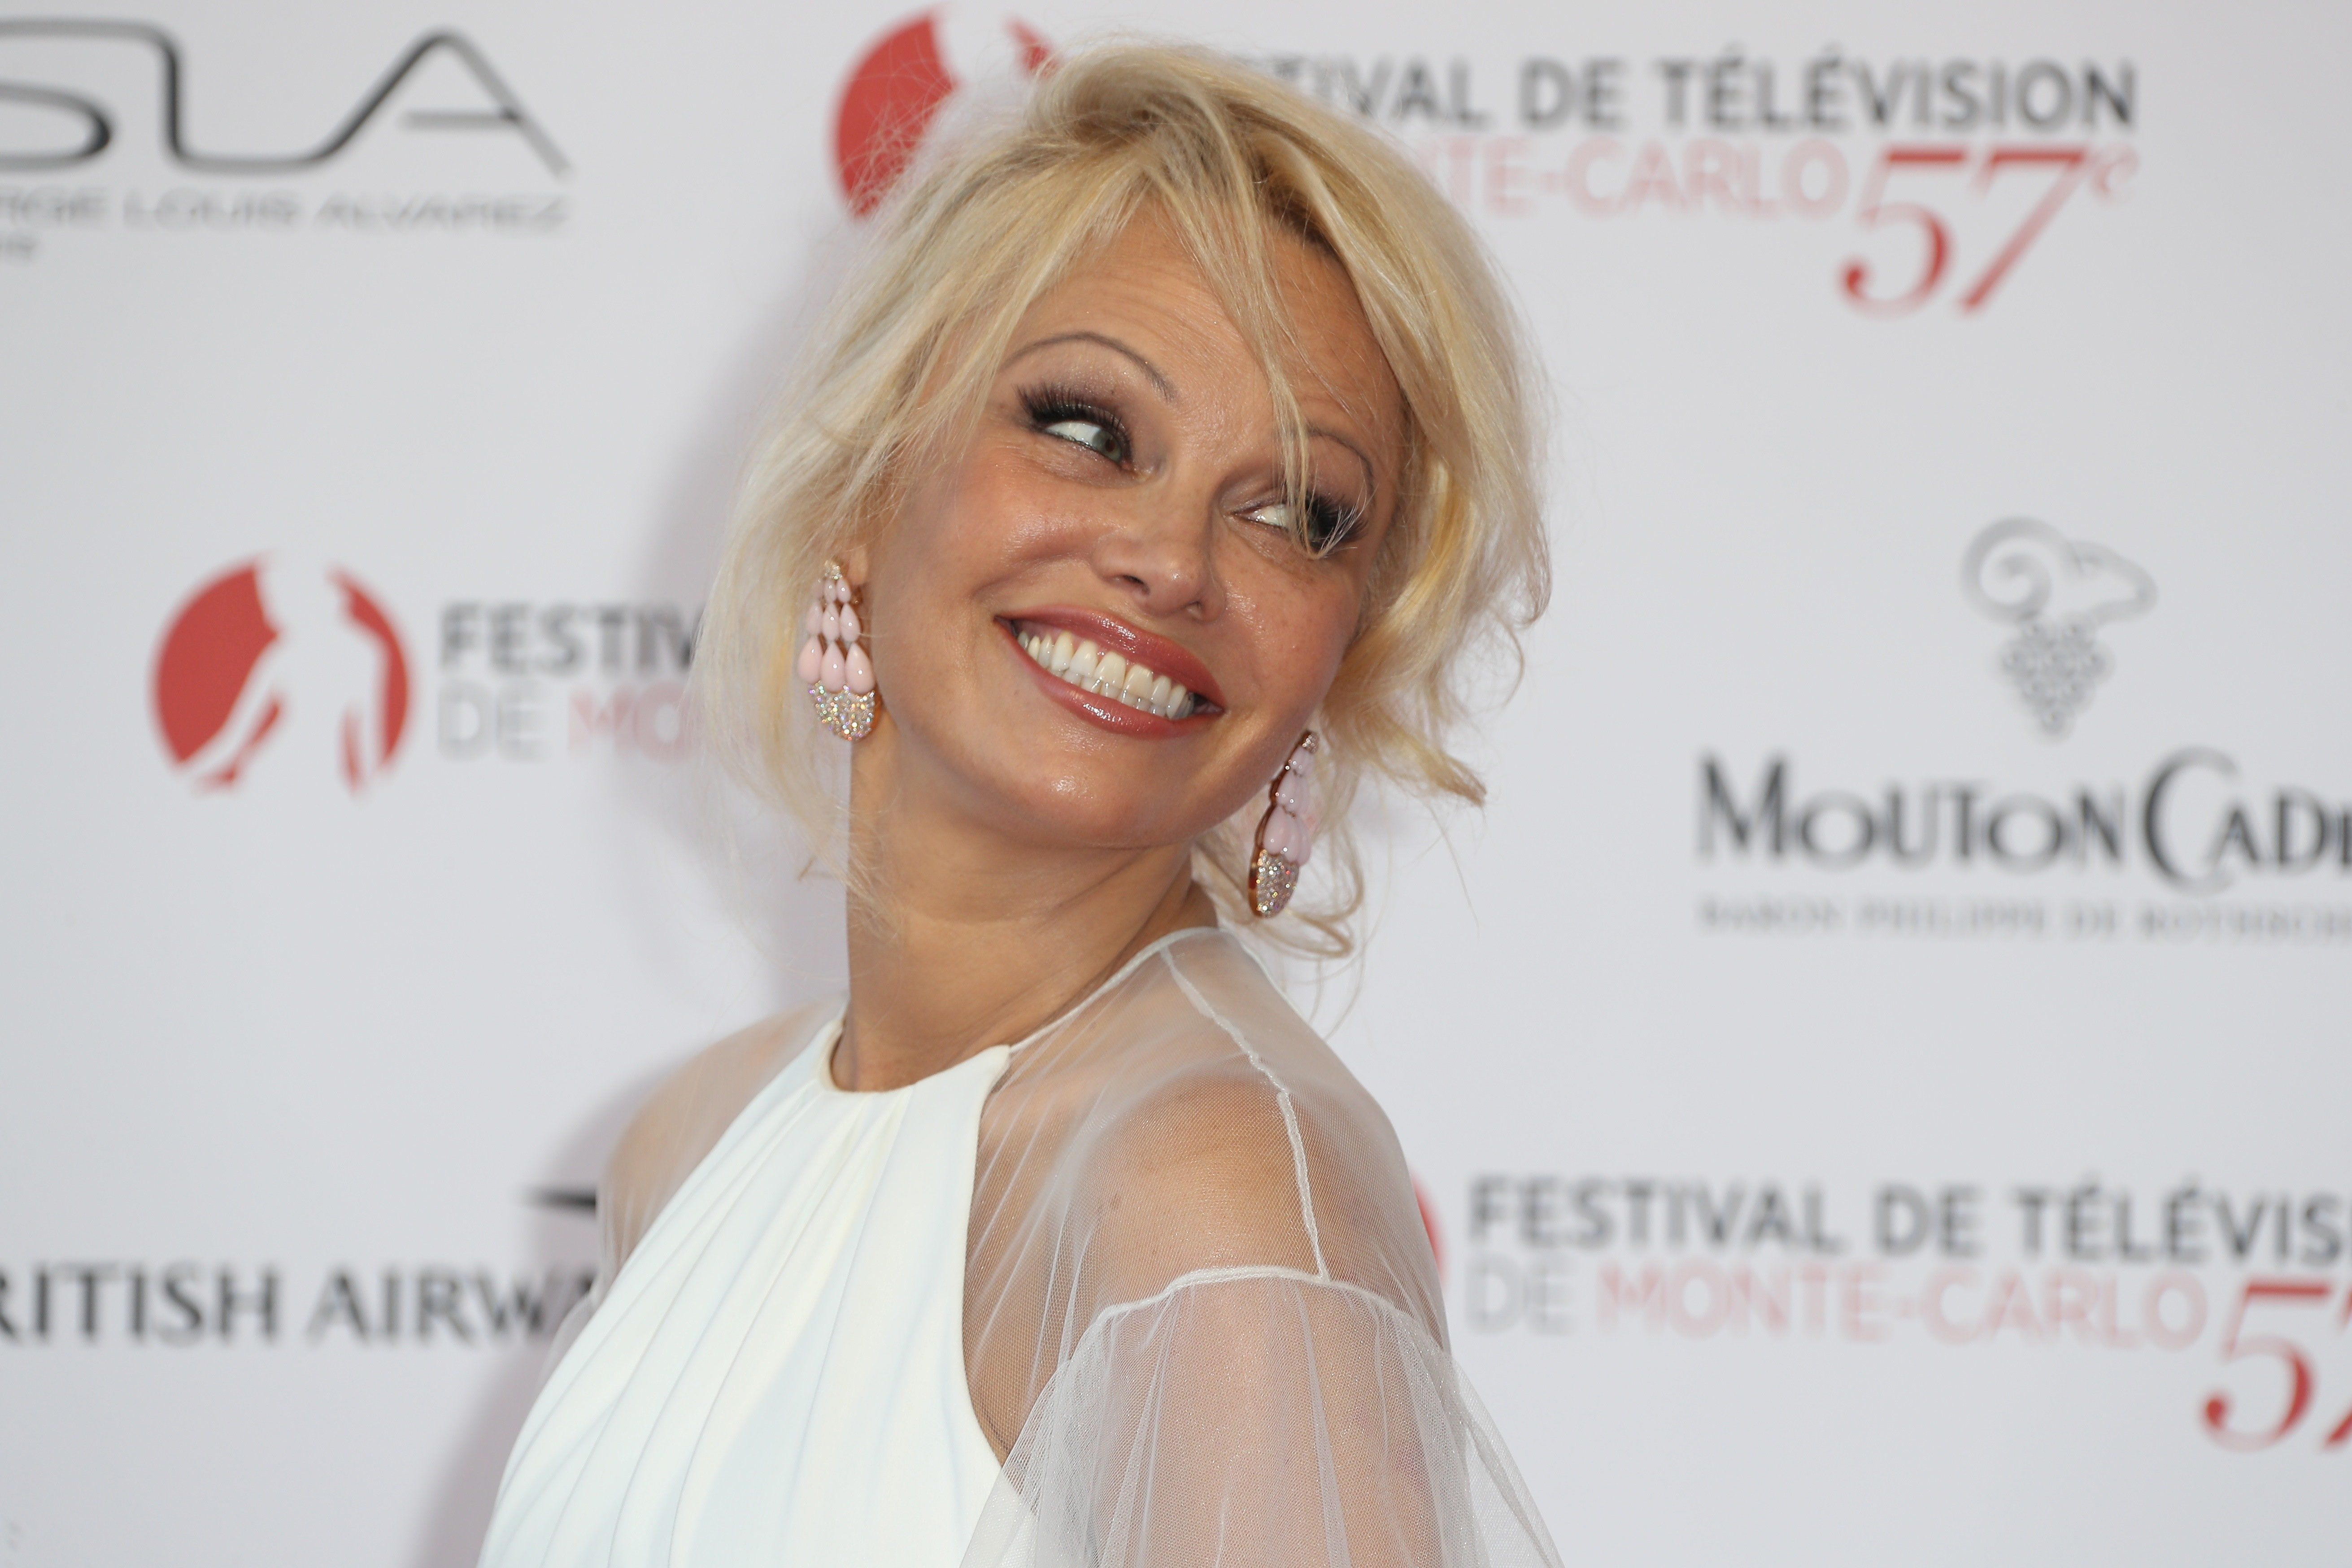 US actress Pamela Anderson poses during the opening Ceremony of the 57th Monte-Carlo Television Festival on June 16, 2017 in Monaco.  / AFP PHOTO / VALERY HACHE        (Photo credit should read VALERY HACHE/AFP/Getty Images)